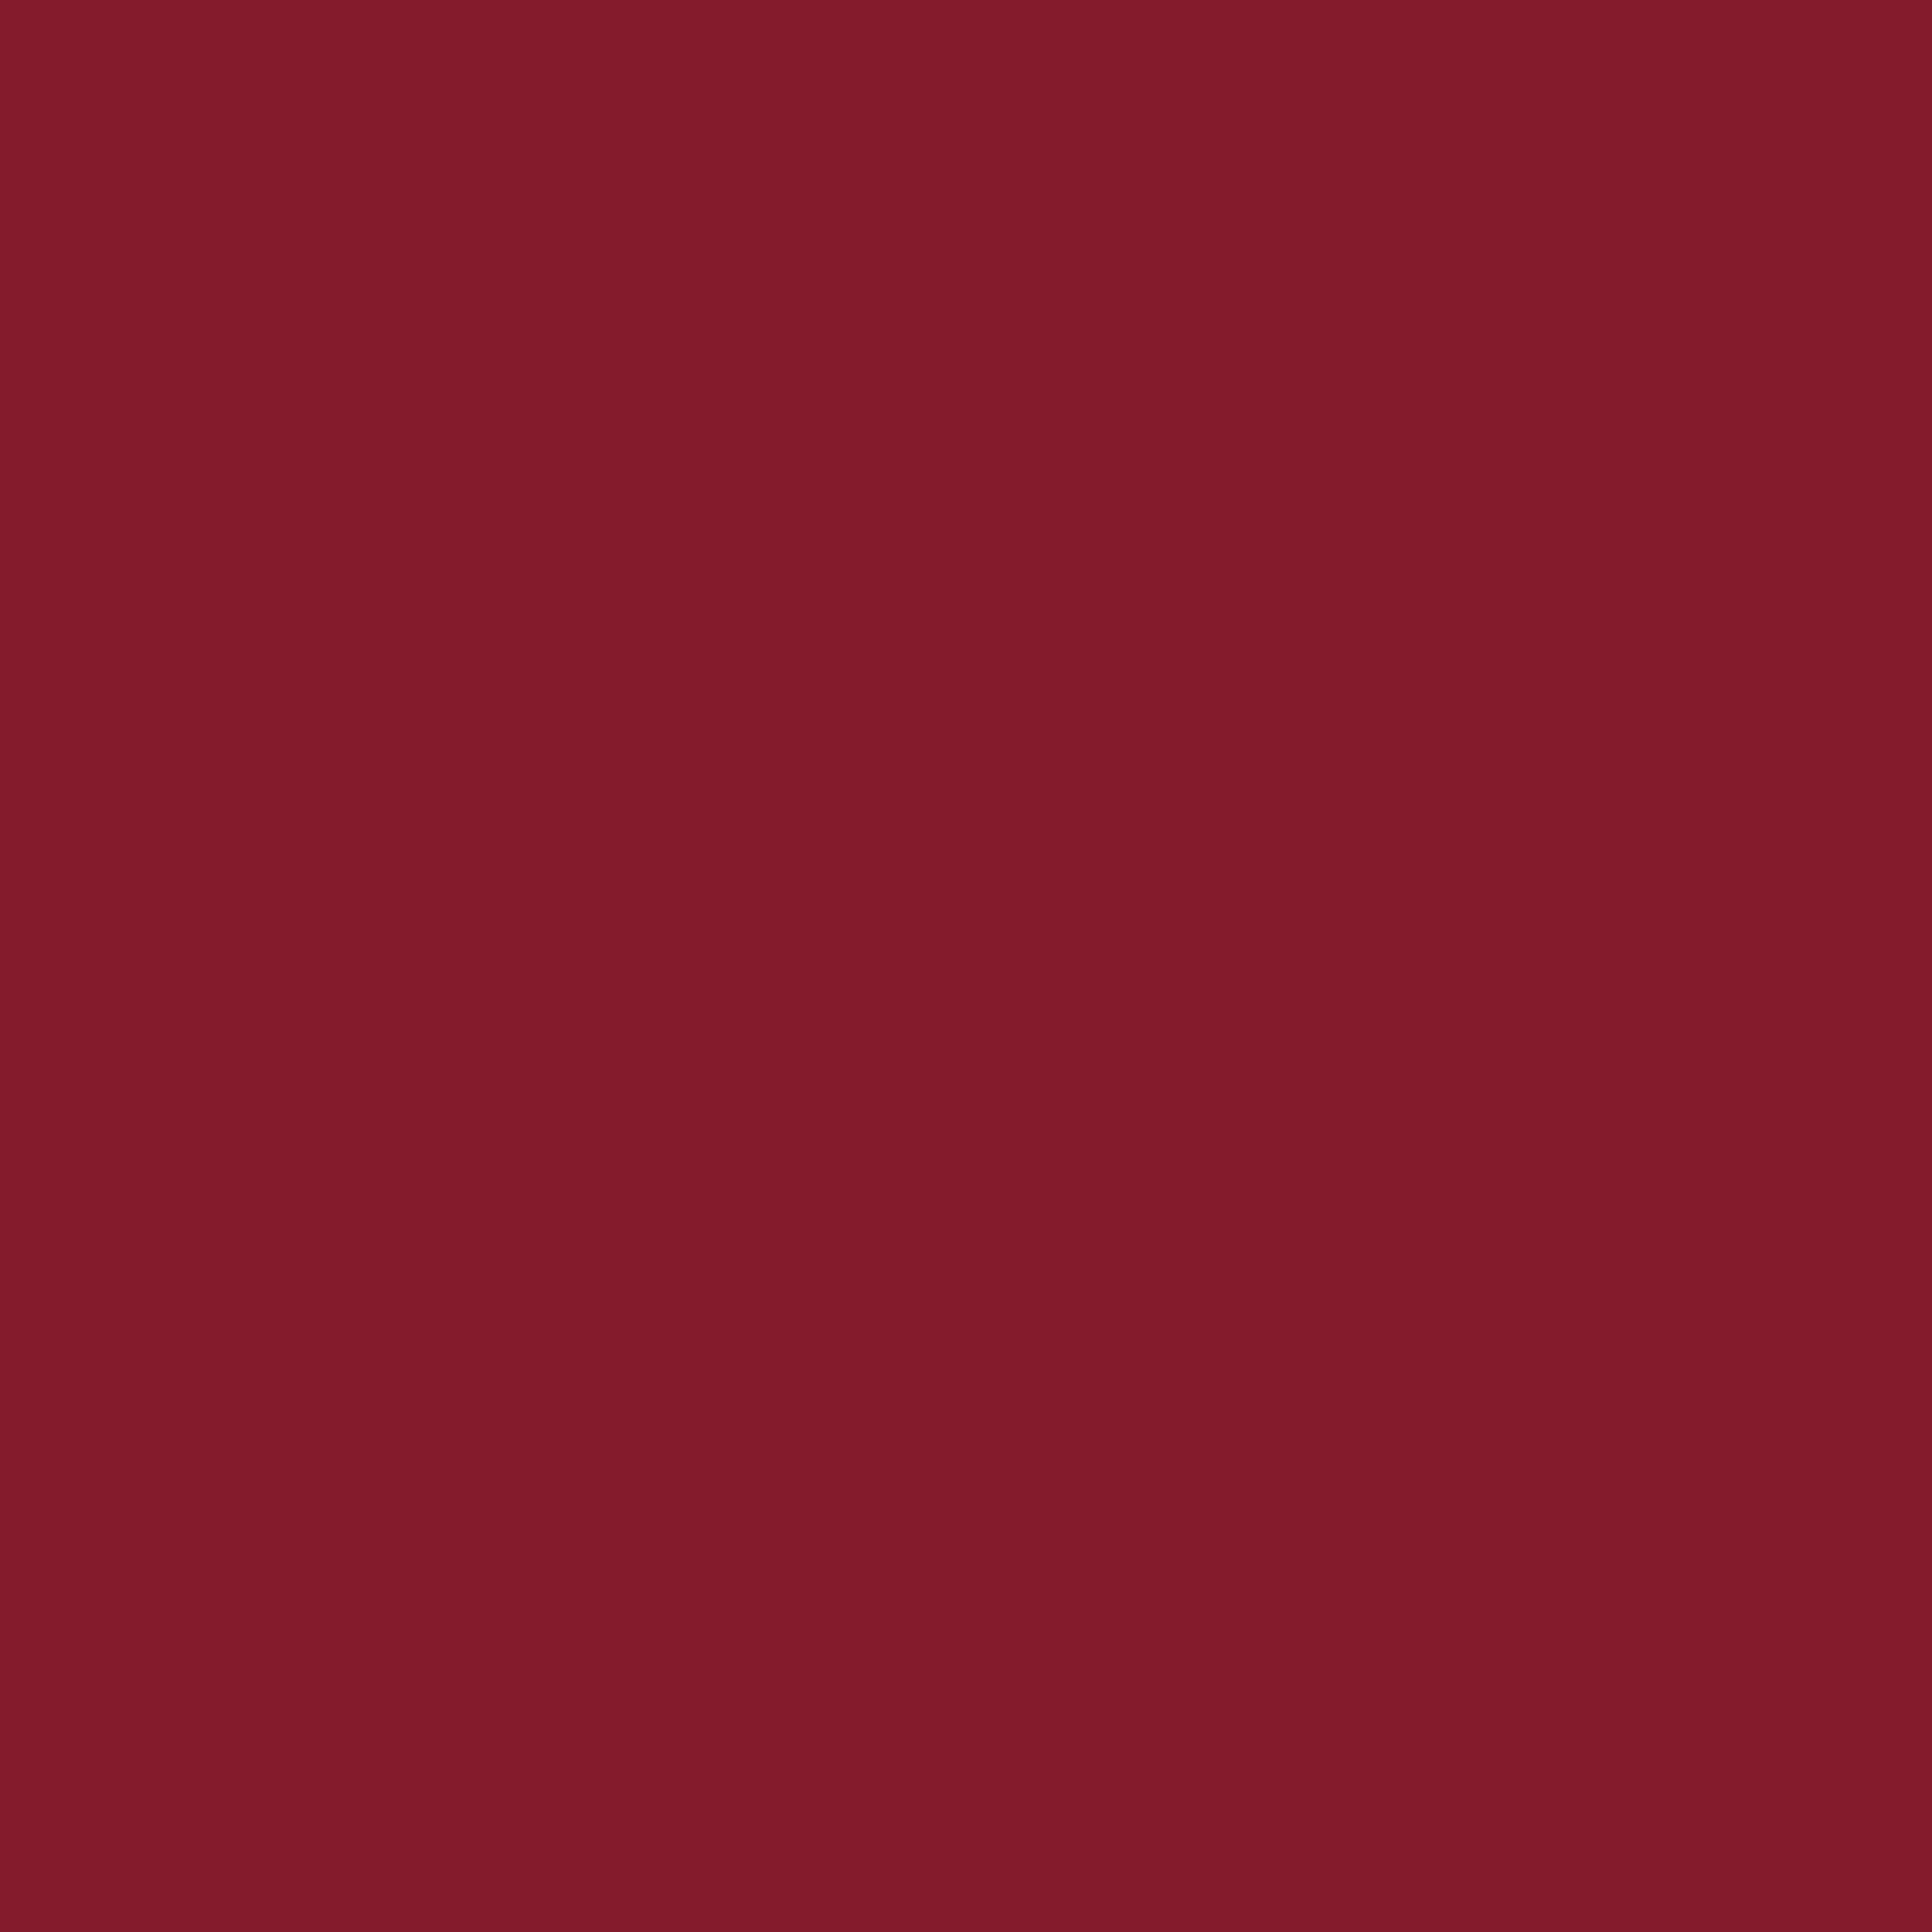 3600x3600 Antique Ruby Solid Color Background